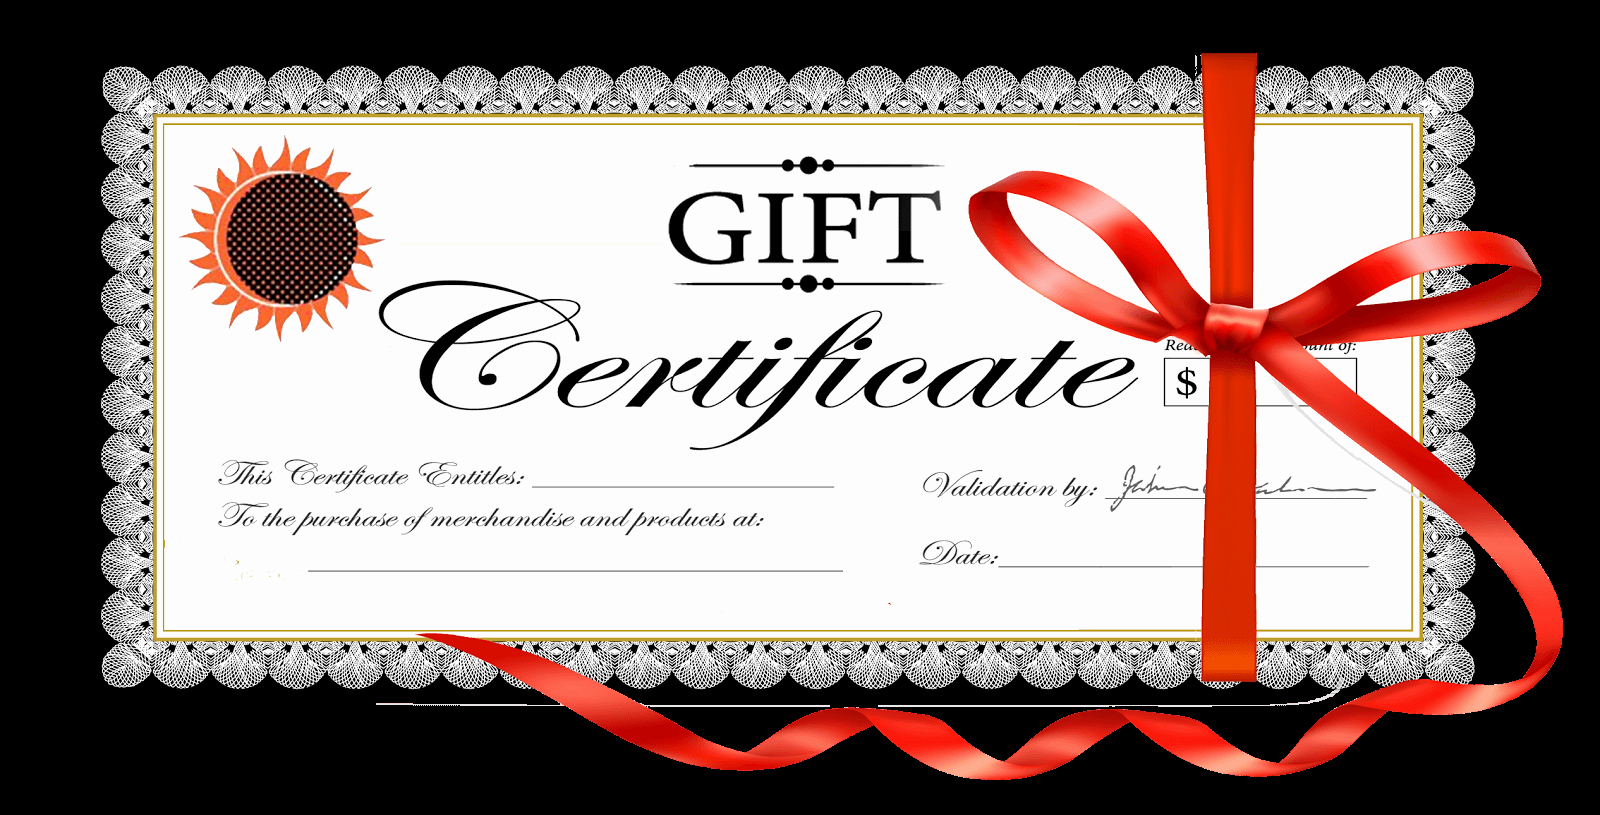 Player Of the Game Certificate New 60th Birthday Gift Ideas – Your Party Starts Here